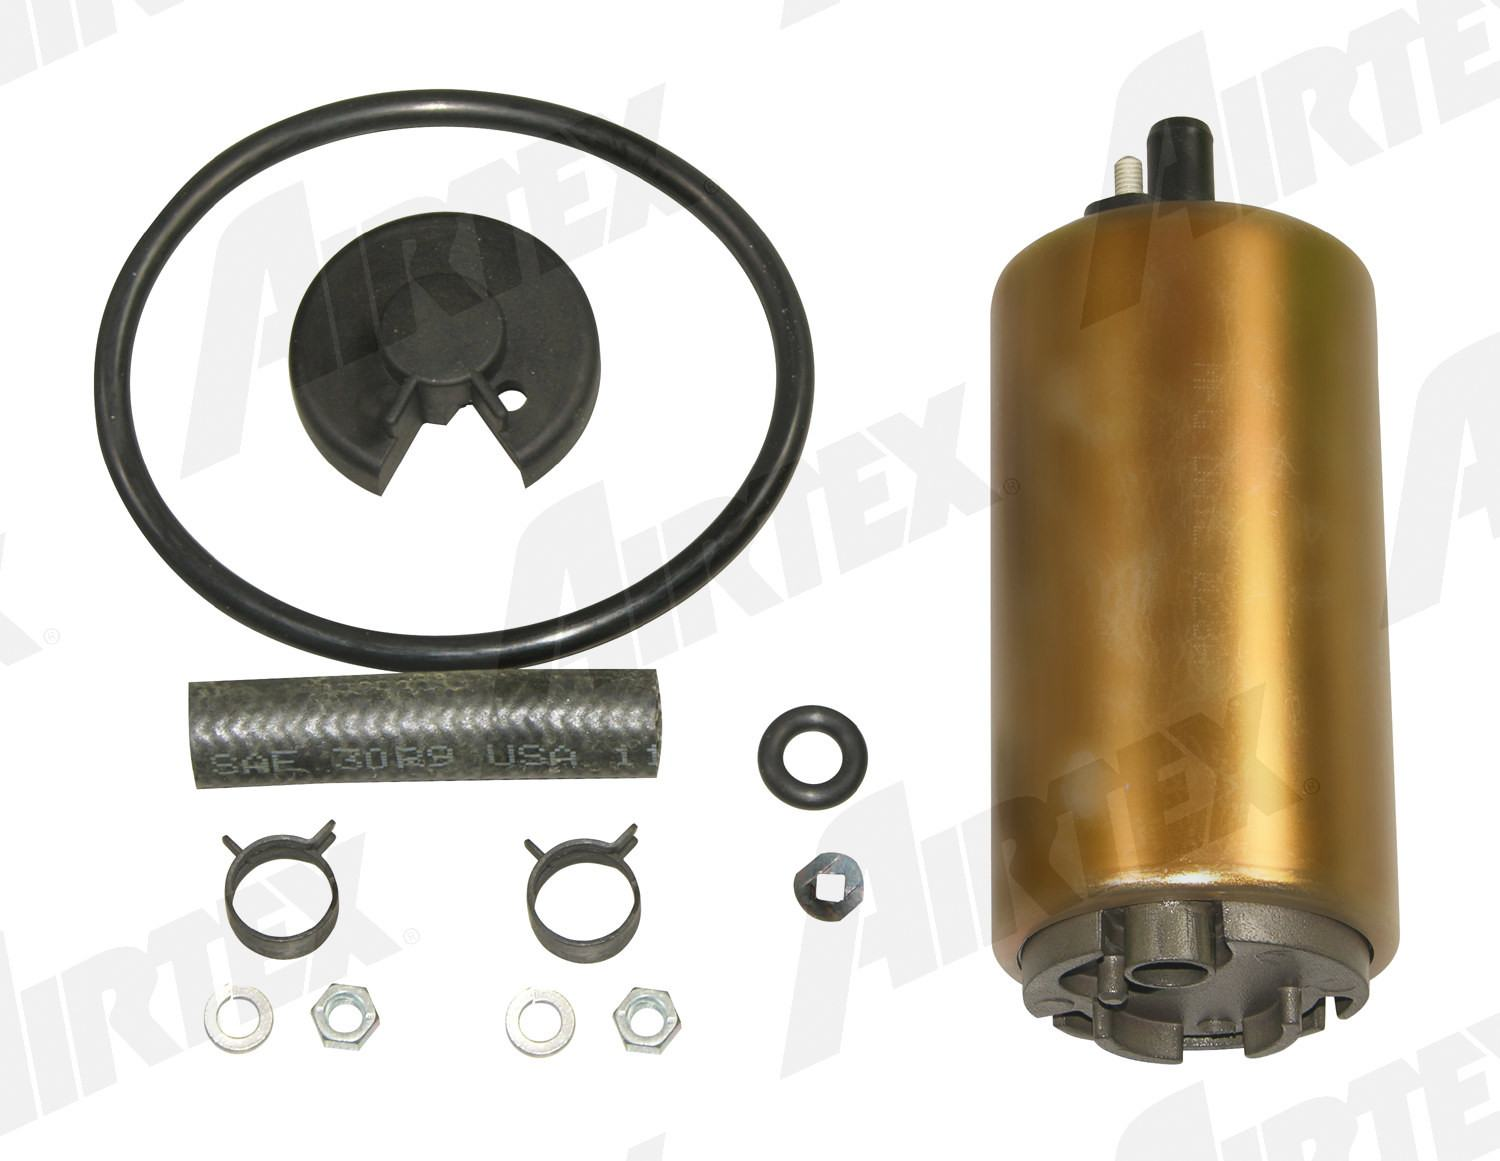 AIRTEX AUTOMOTIVE DIVISION - Electric Fuel Pump (In-Tank) - ATN E3222